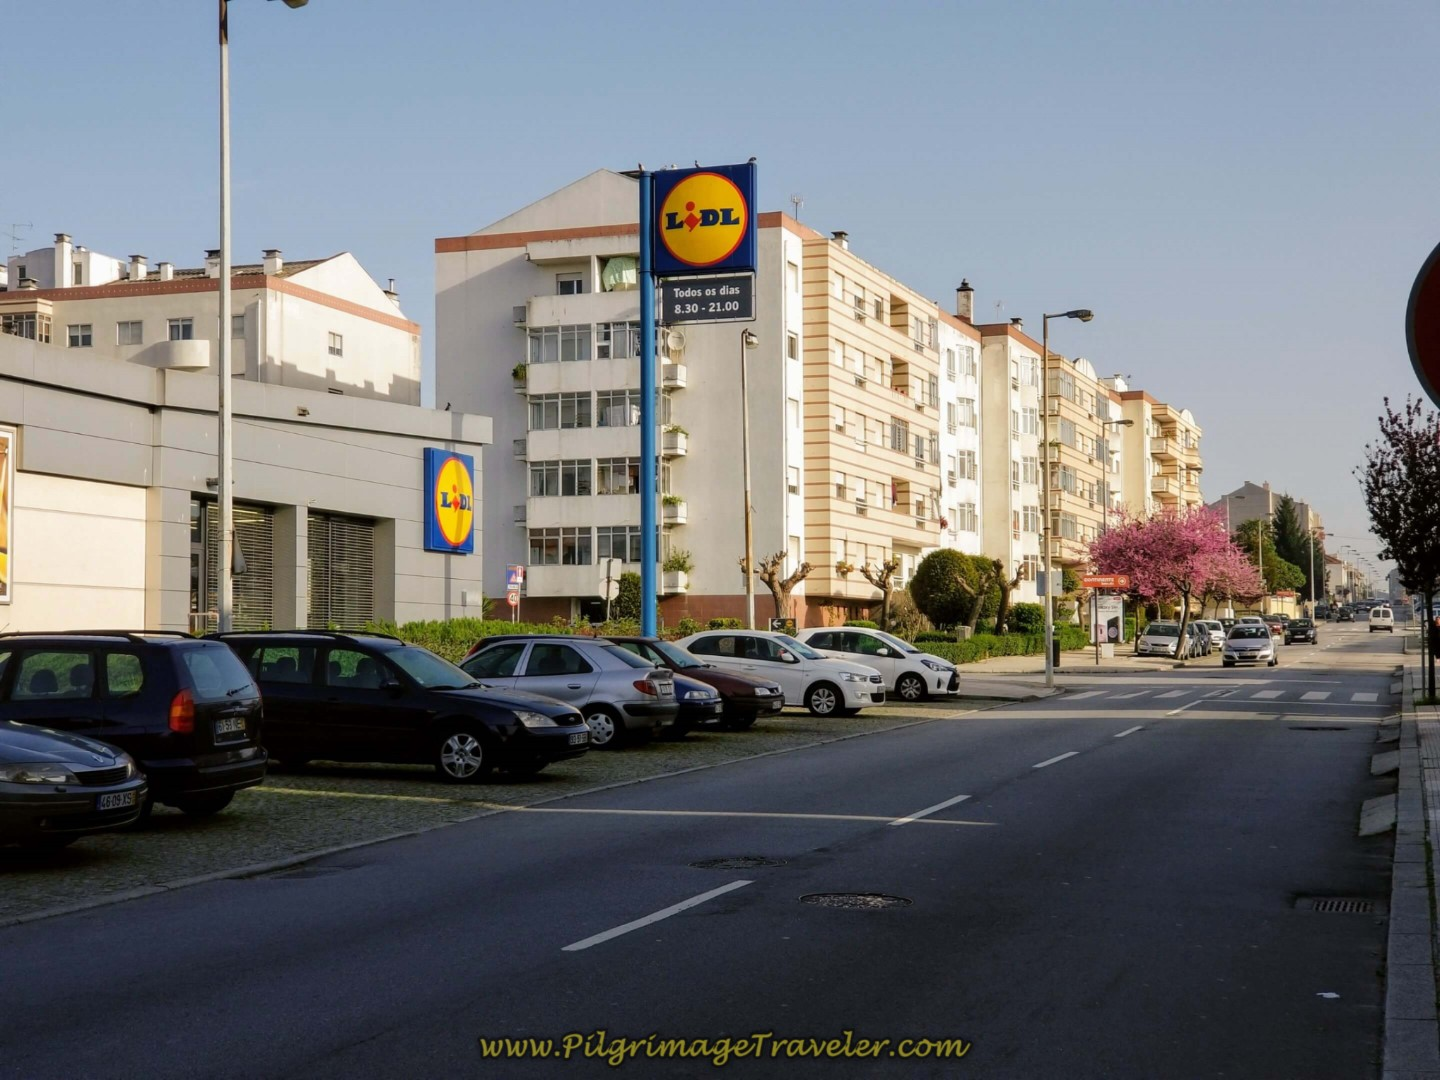 Pass the Lidl Supermarket on day fifteen on the Central Route of the Camino Portugués